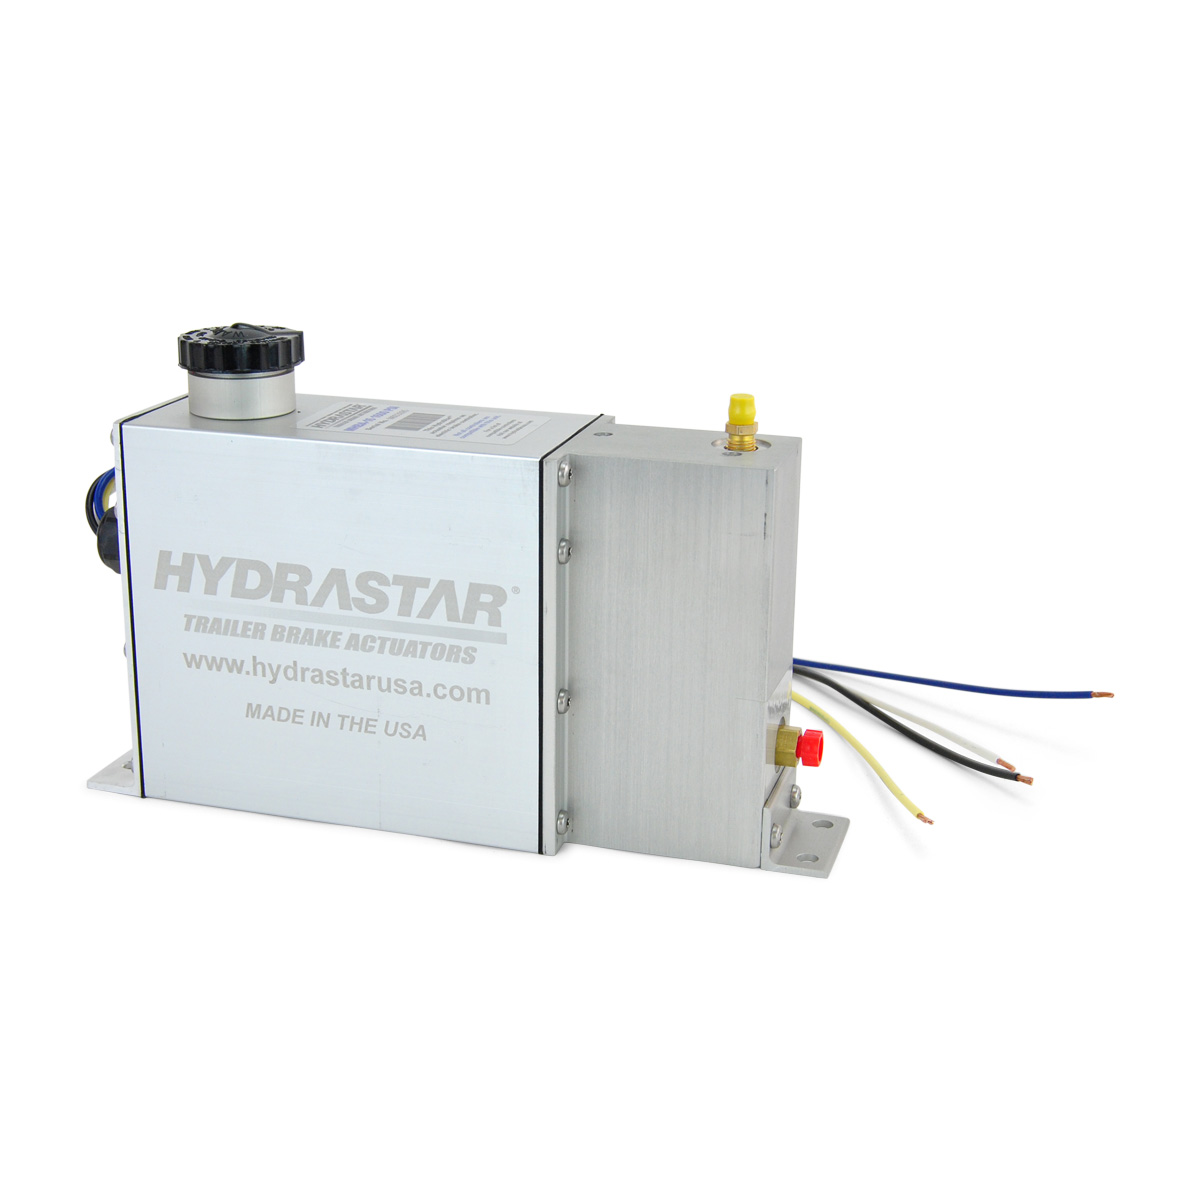 Hydrastar Electric Over Hydraulic Actuator for Disc Brakes 1,600 psi Vented